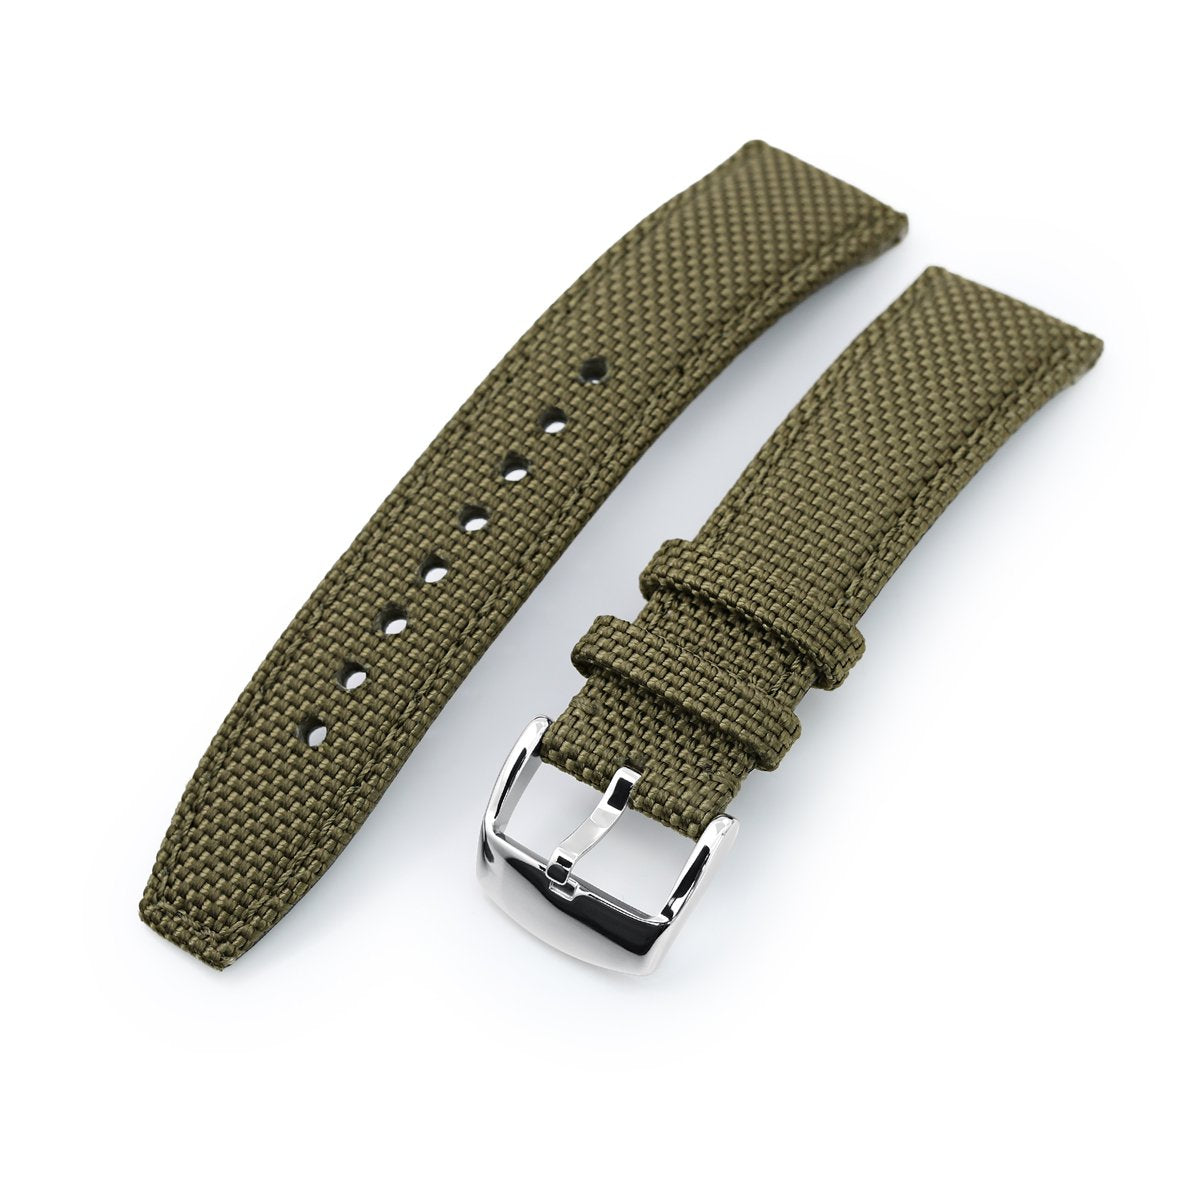 20mm 21mm or 22mm Strong Texture Woven Nylon Military Green Watch Strap Polished Strapcode Watch Bands